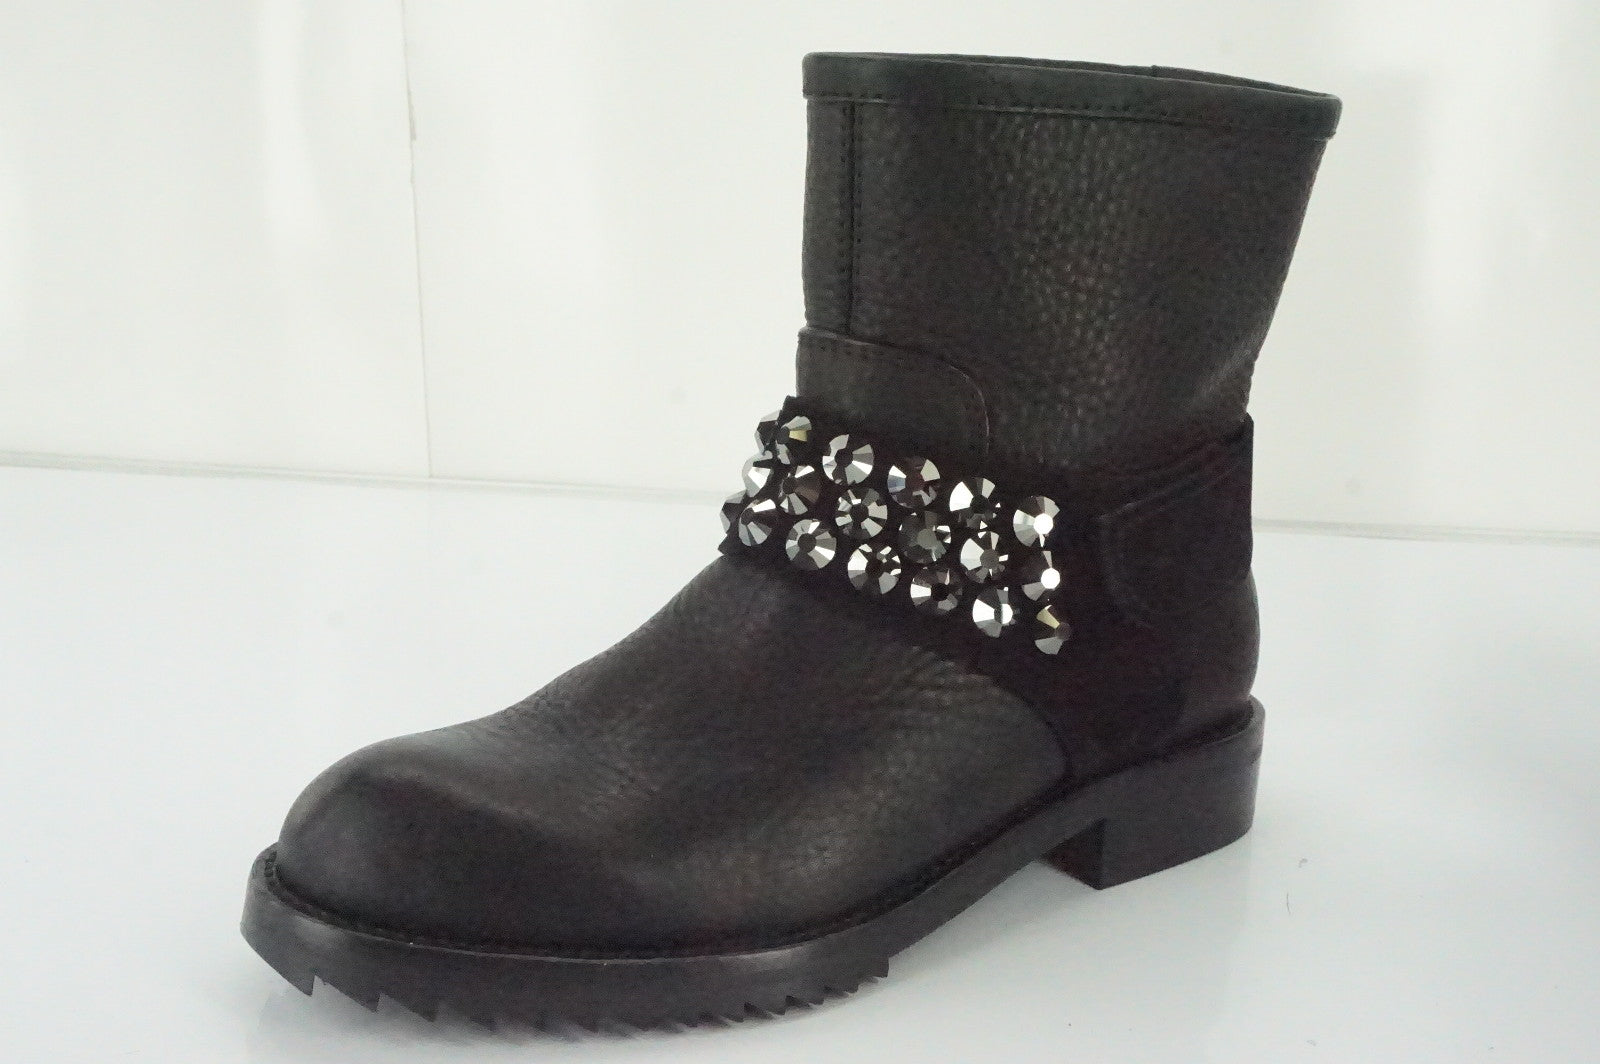 Pedro Garcia Black Leather 'Kian' Crystal Studded Biker Boots Size 35.5 New $875